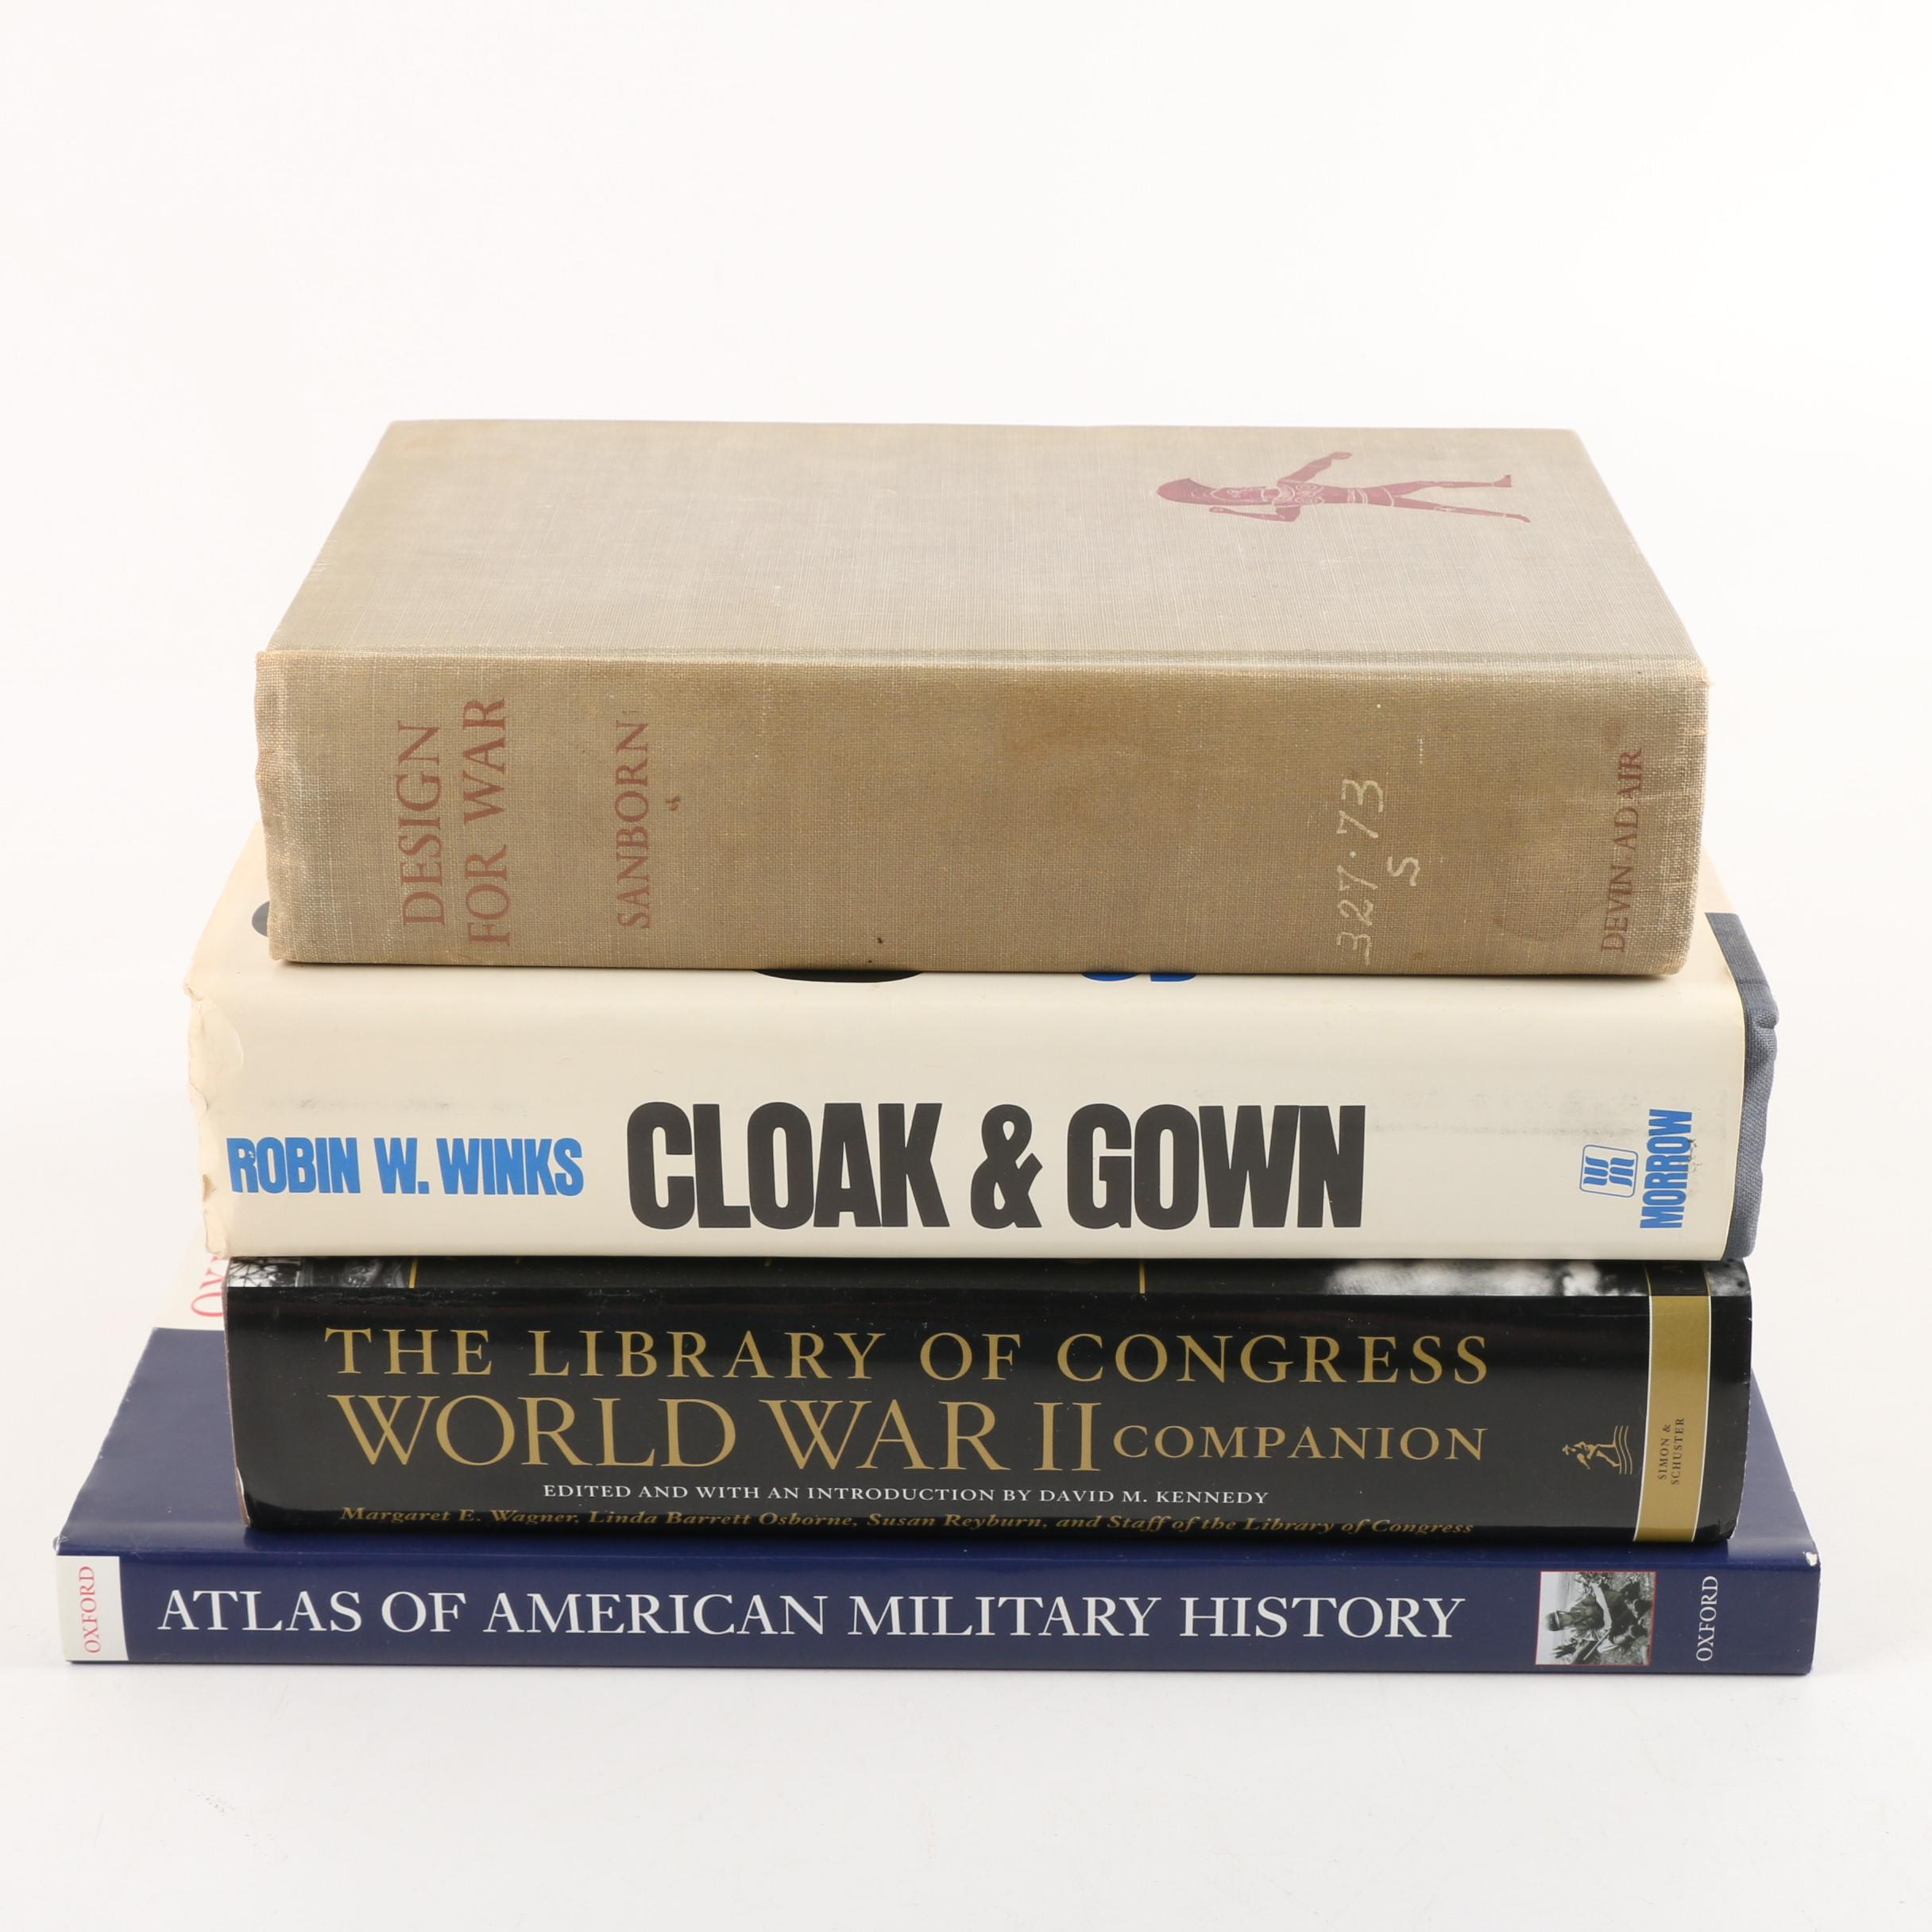 Books on War and Military History